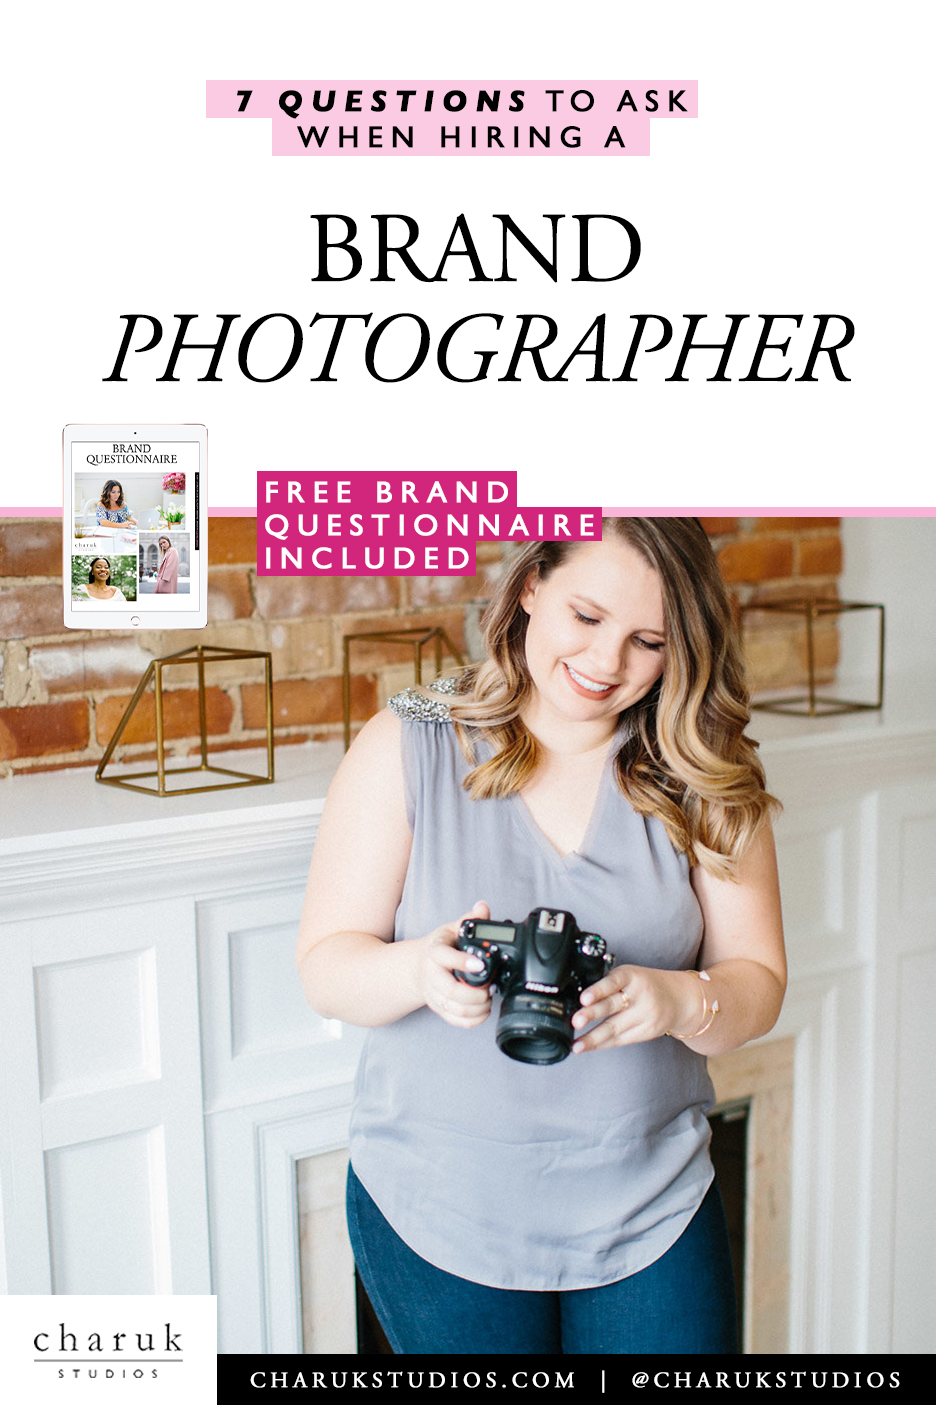 7 Questions to ask when hiring a brand photographer by Charuk Studios